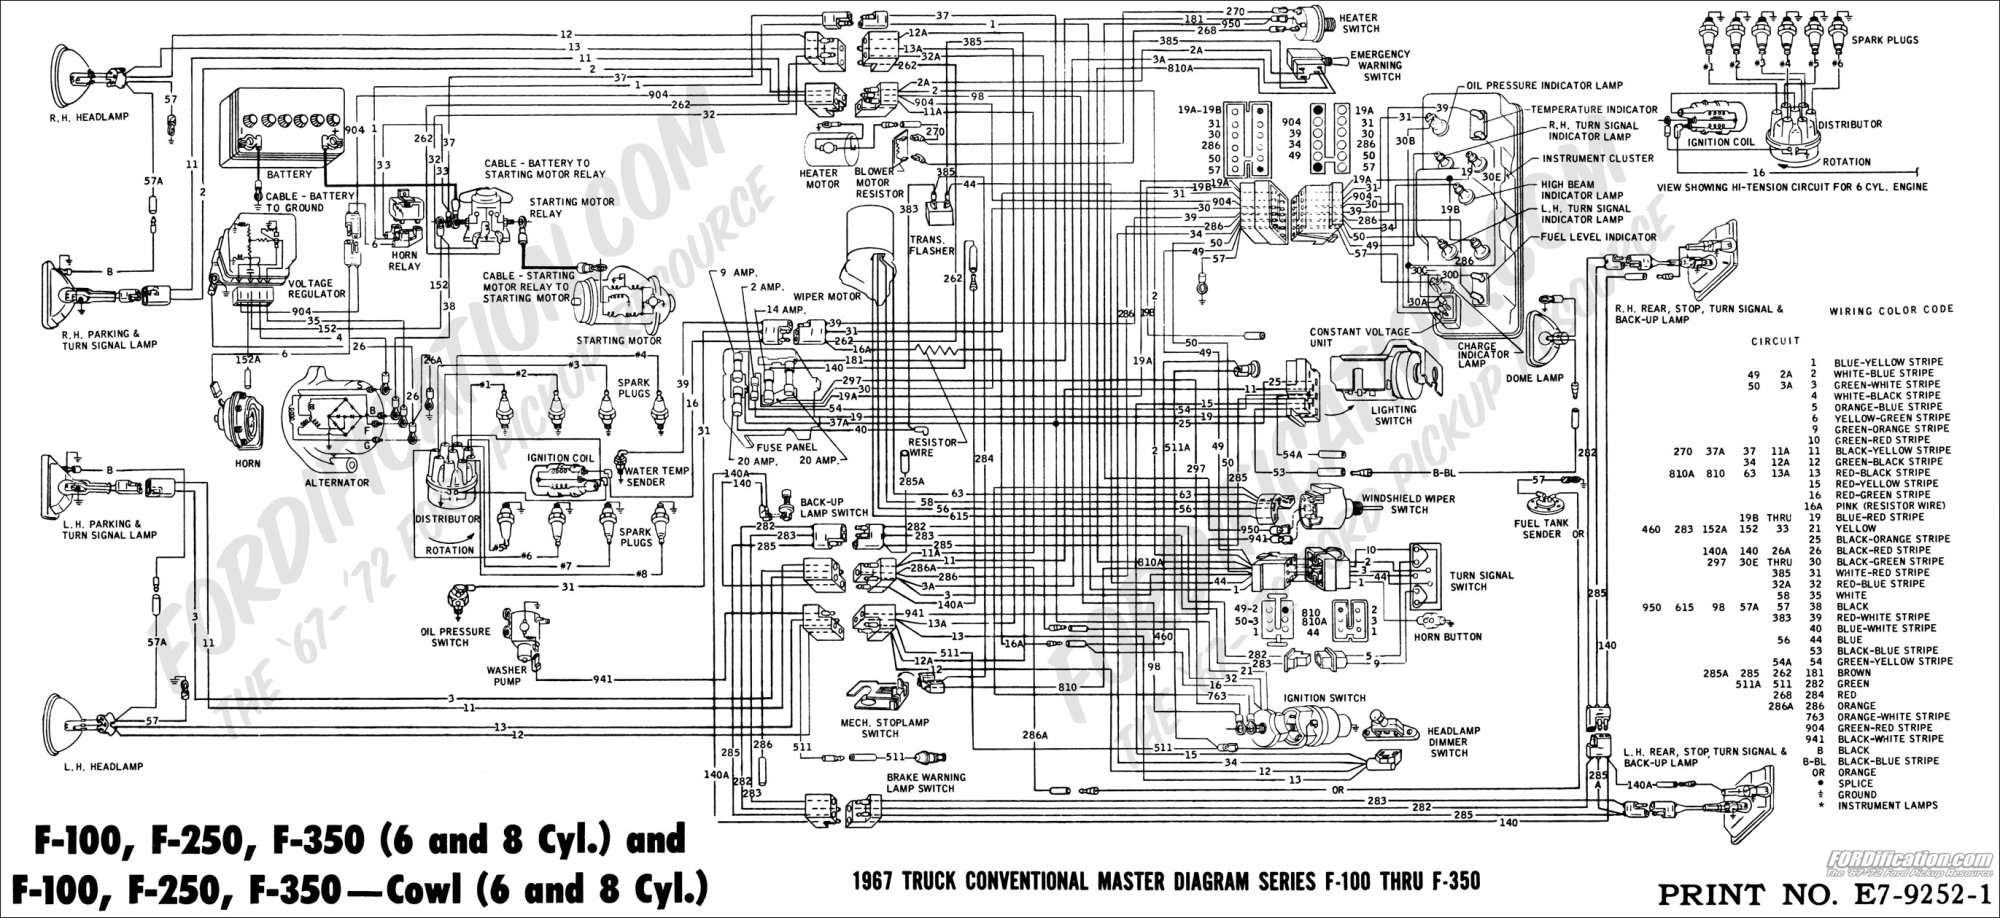 hight resolution of 1968 ford truck wiring diagram wiring diagram name ford truck technical drawings and schematics section h